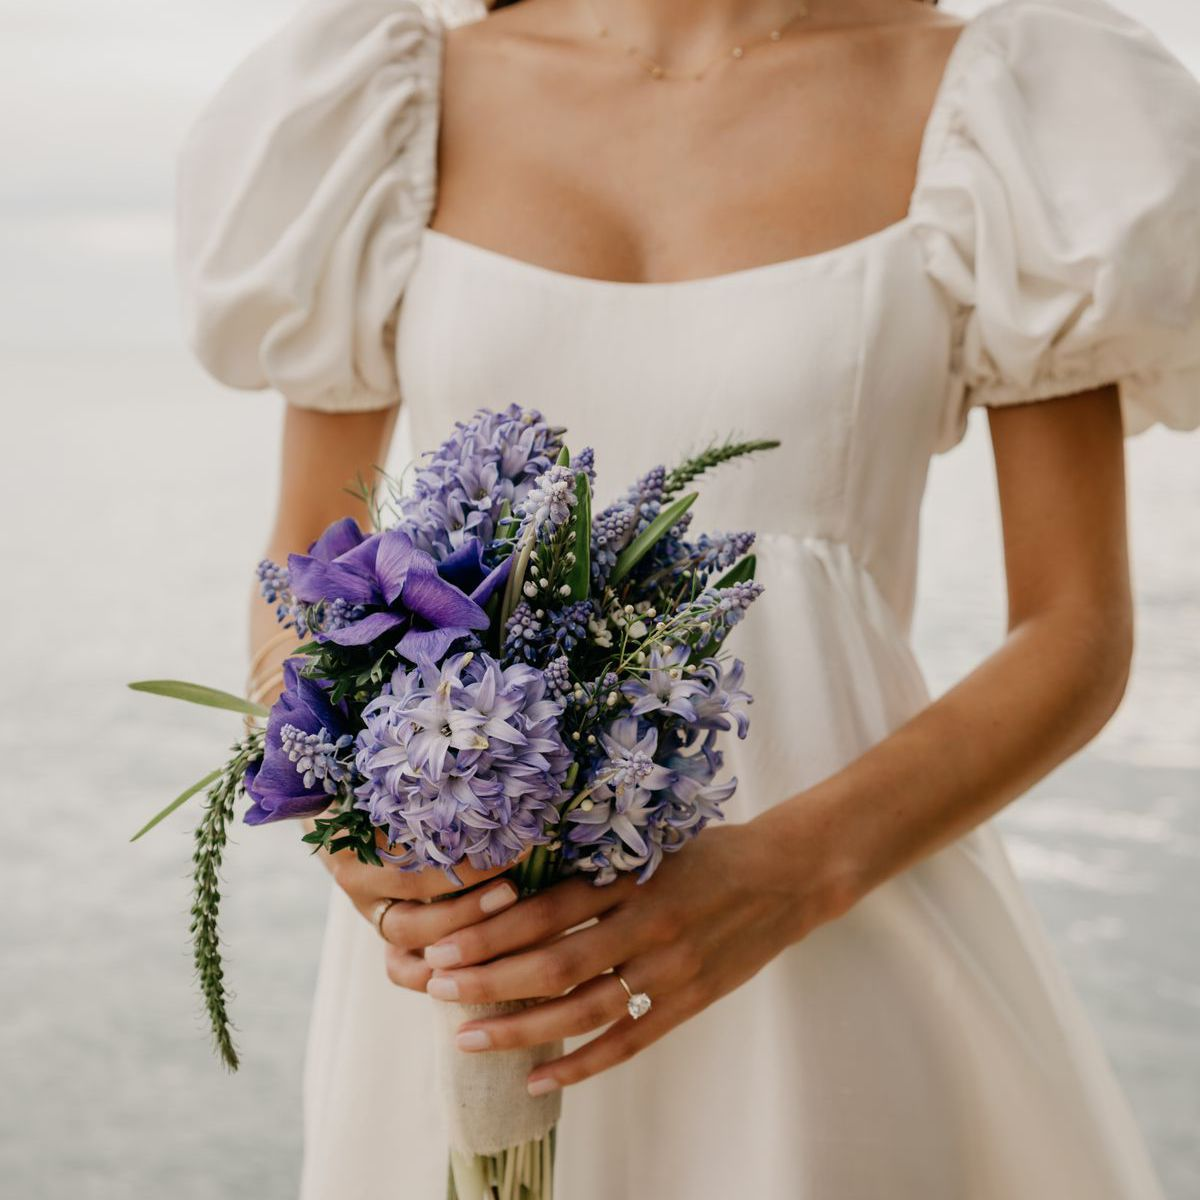 choose blue roses wedding bouquets for your wedding 7 - Choose Blue Roses Wedding Bouquets for Your Wedding